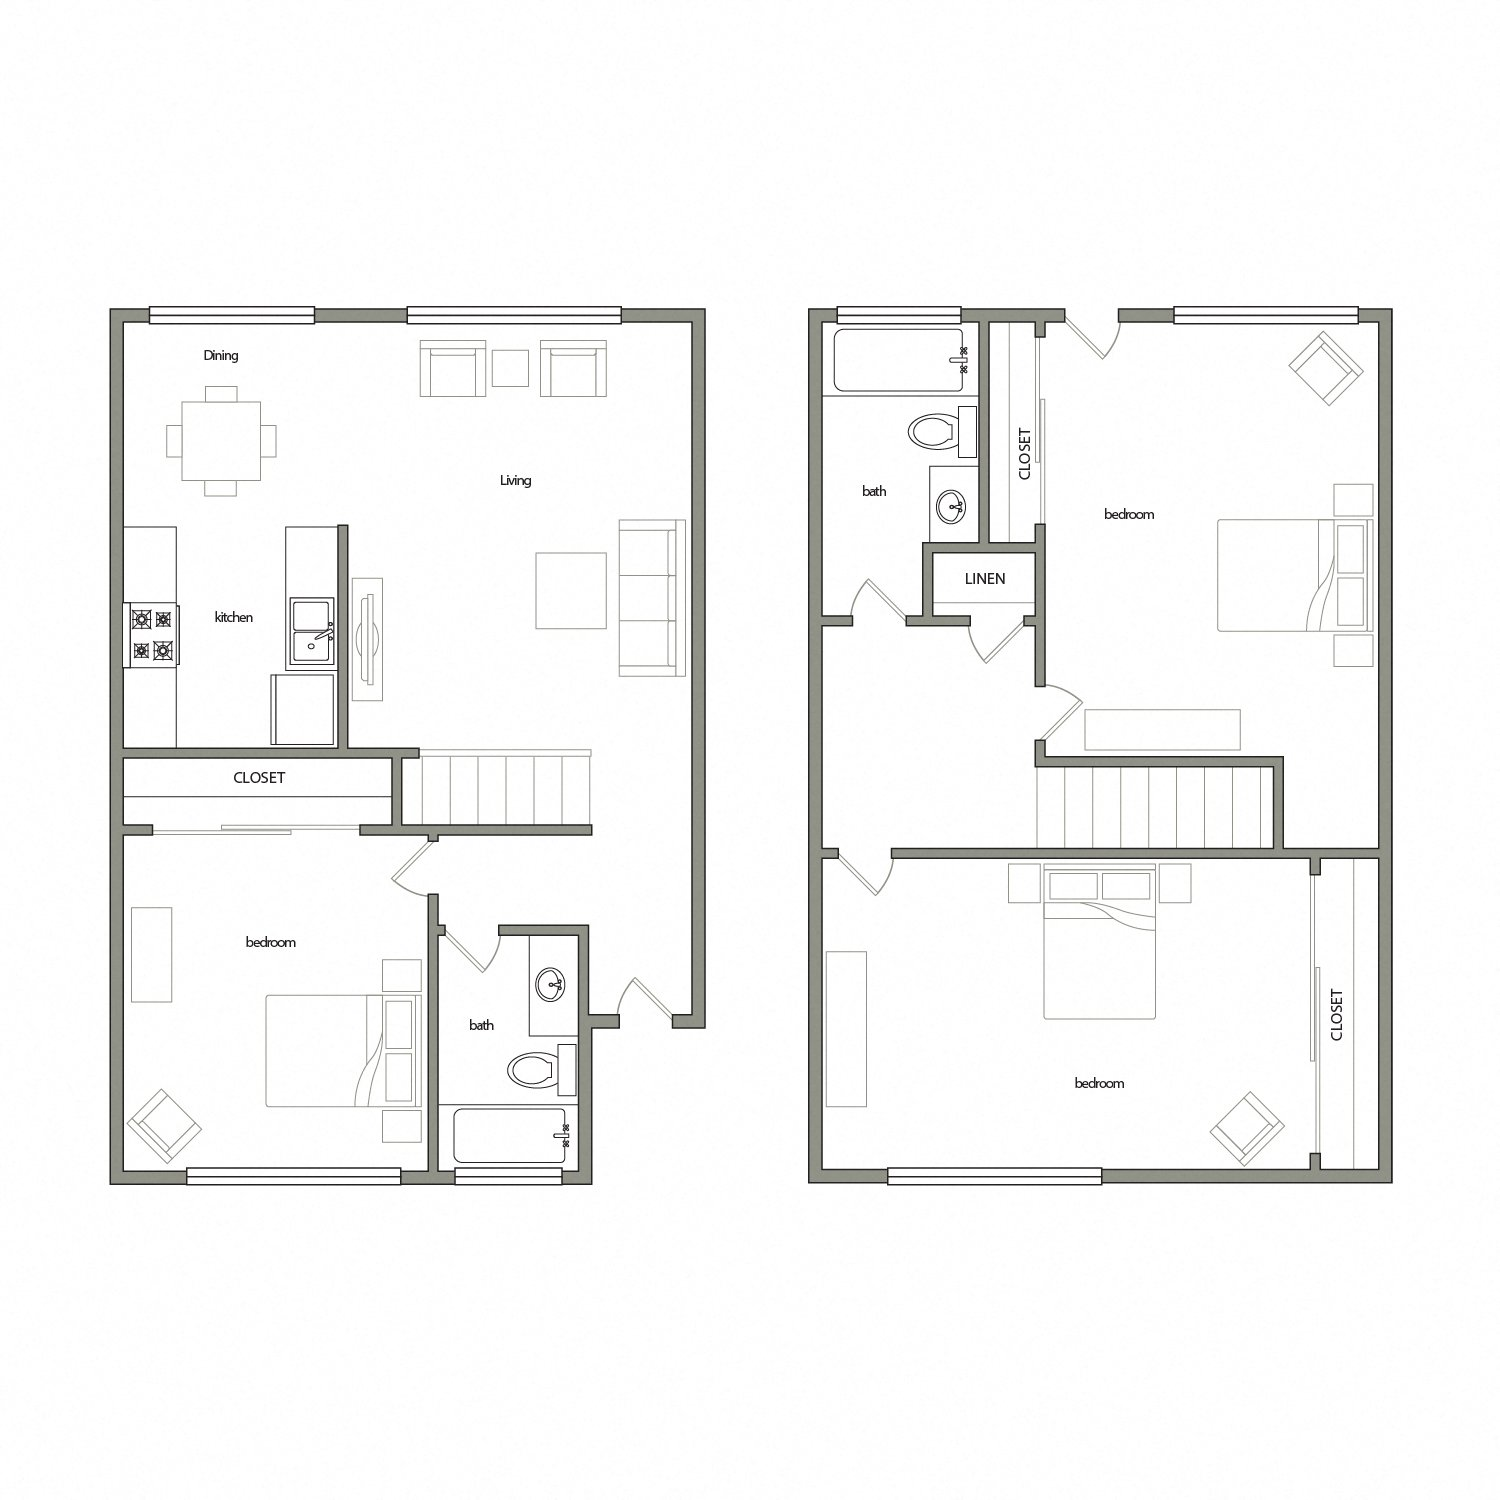 Sevilla floor plan diagram. Two story apartment with three bedrooms, two bathrooms, and an open kitchen dining and living area.